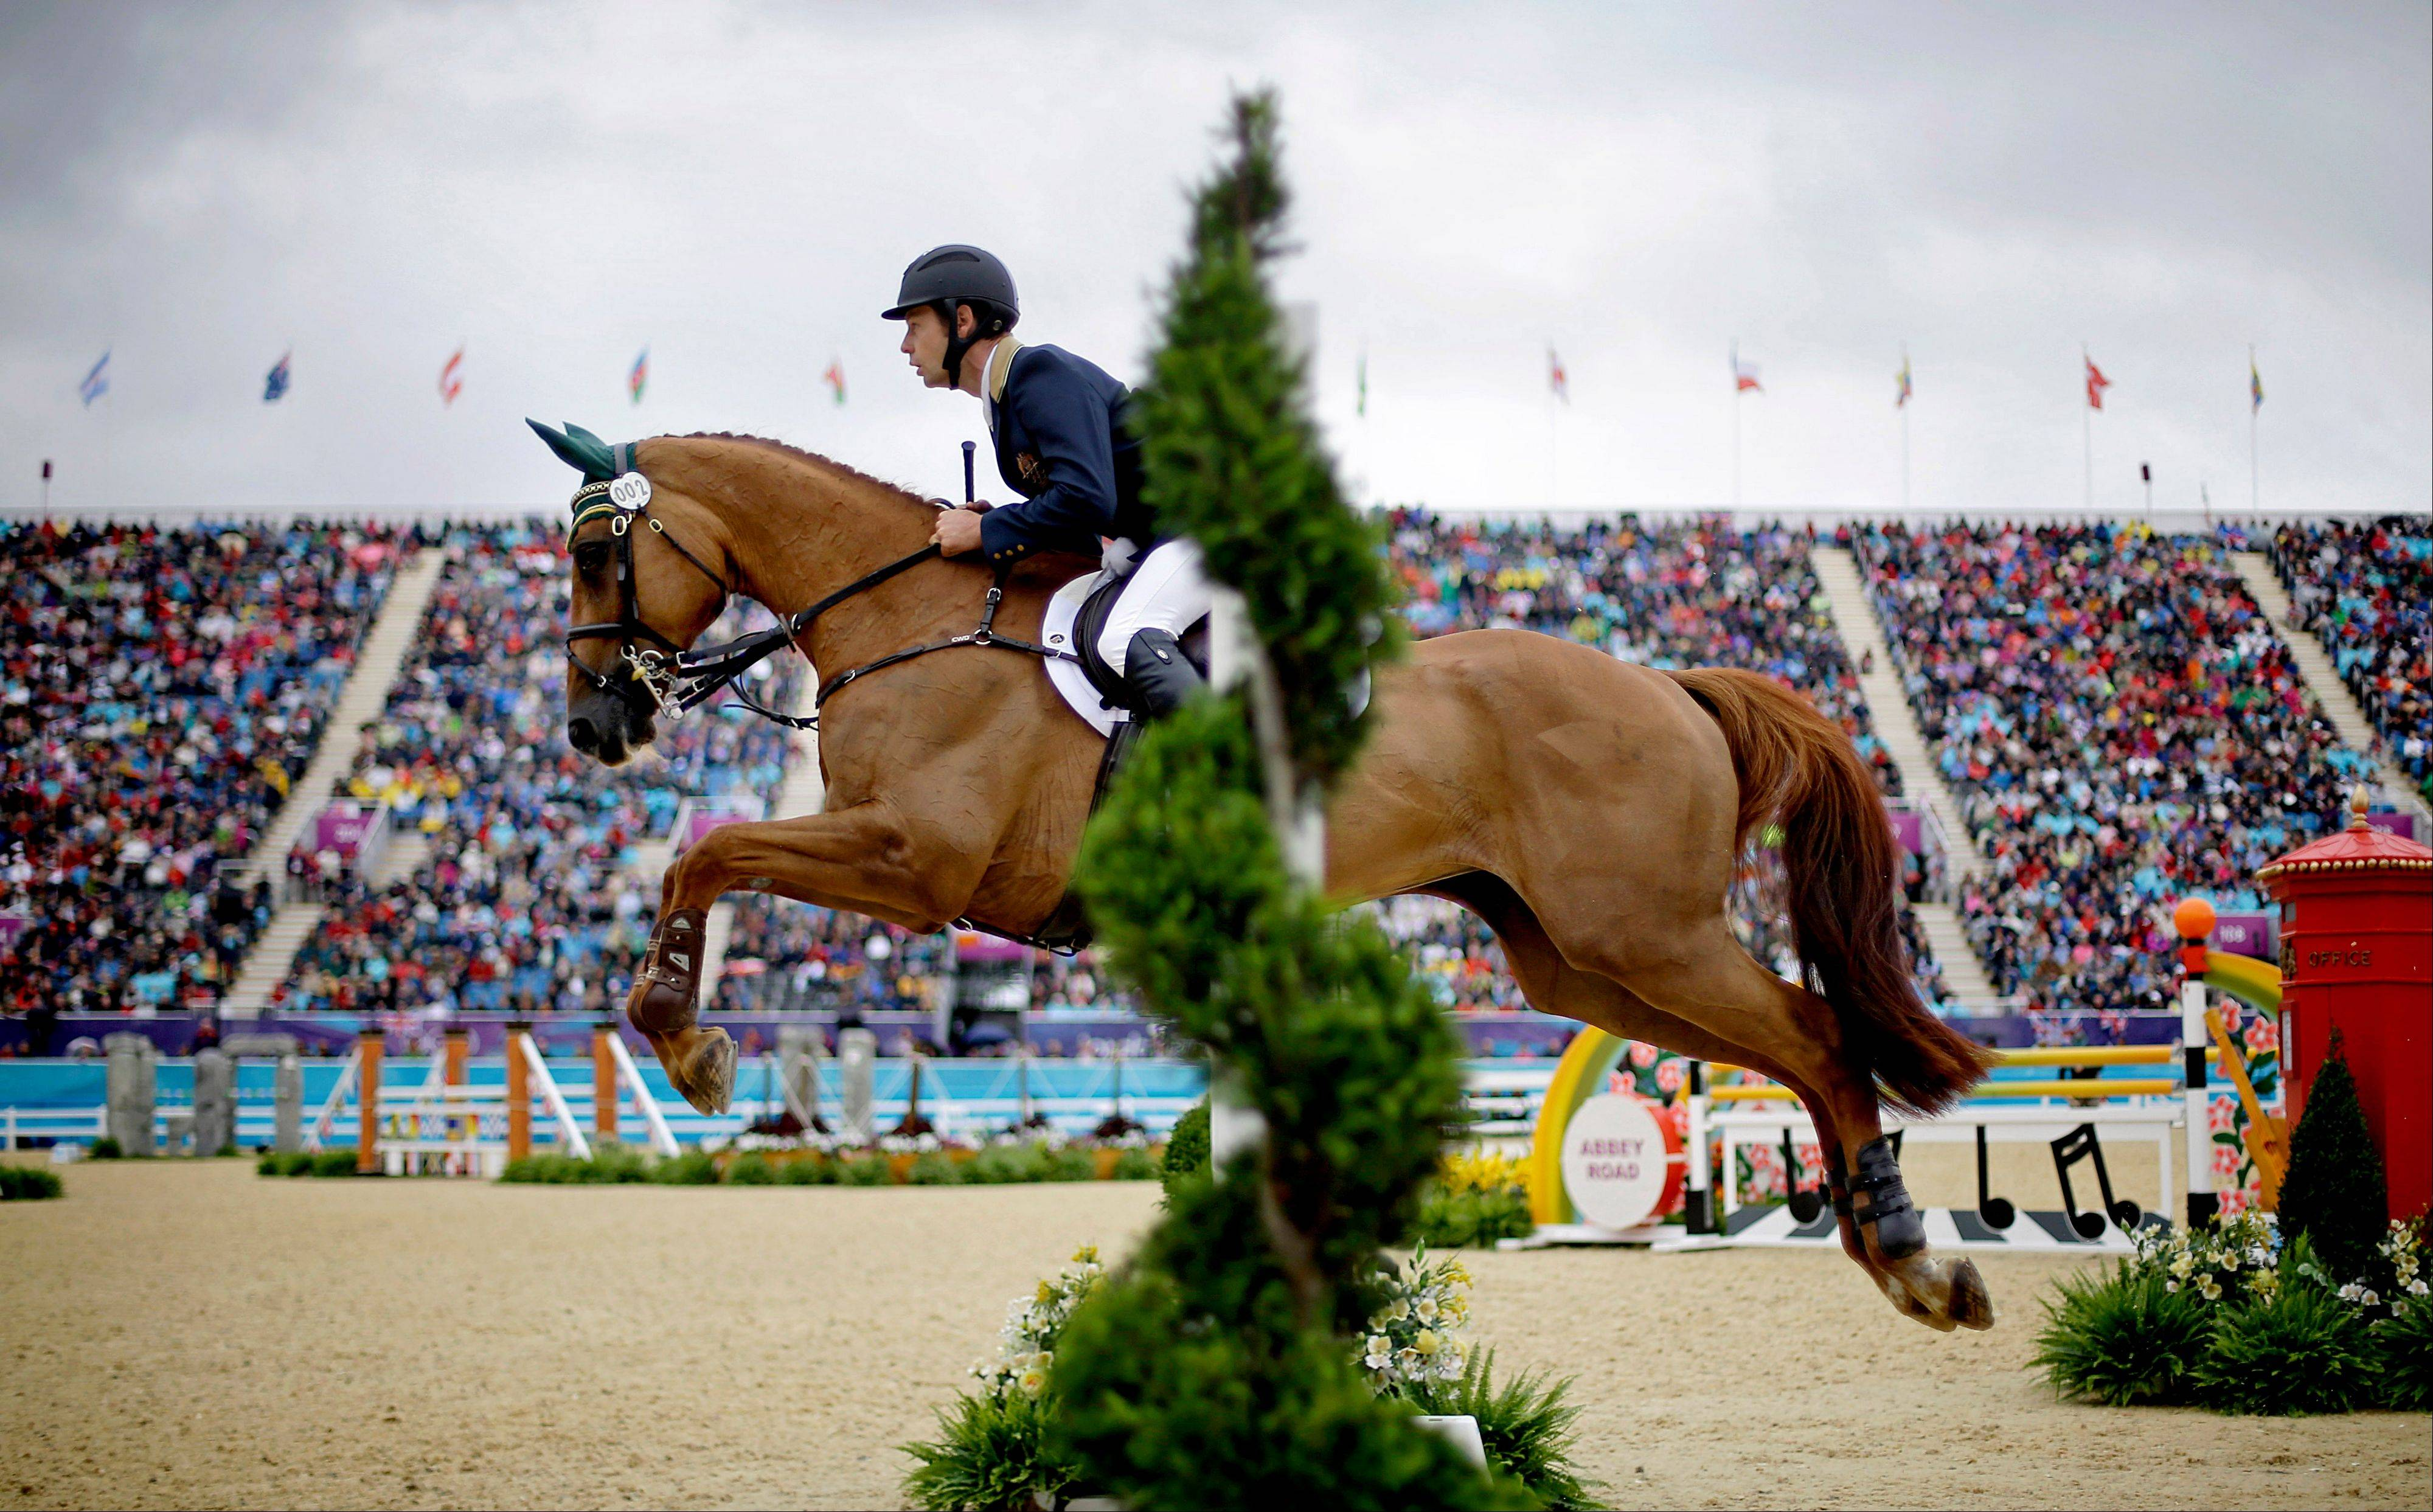 Australia's Christopher Burton and his horse HP Leilani, clear a jump in the equestrian individual show jumping at the 2012 Summer Olympics on July 31. You can see the finals of equestrian's individual jumping event Wednesday, while everyone else is watching women's beach volleyball.